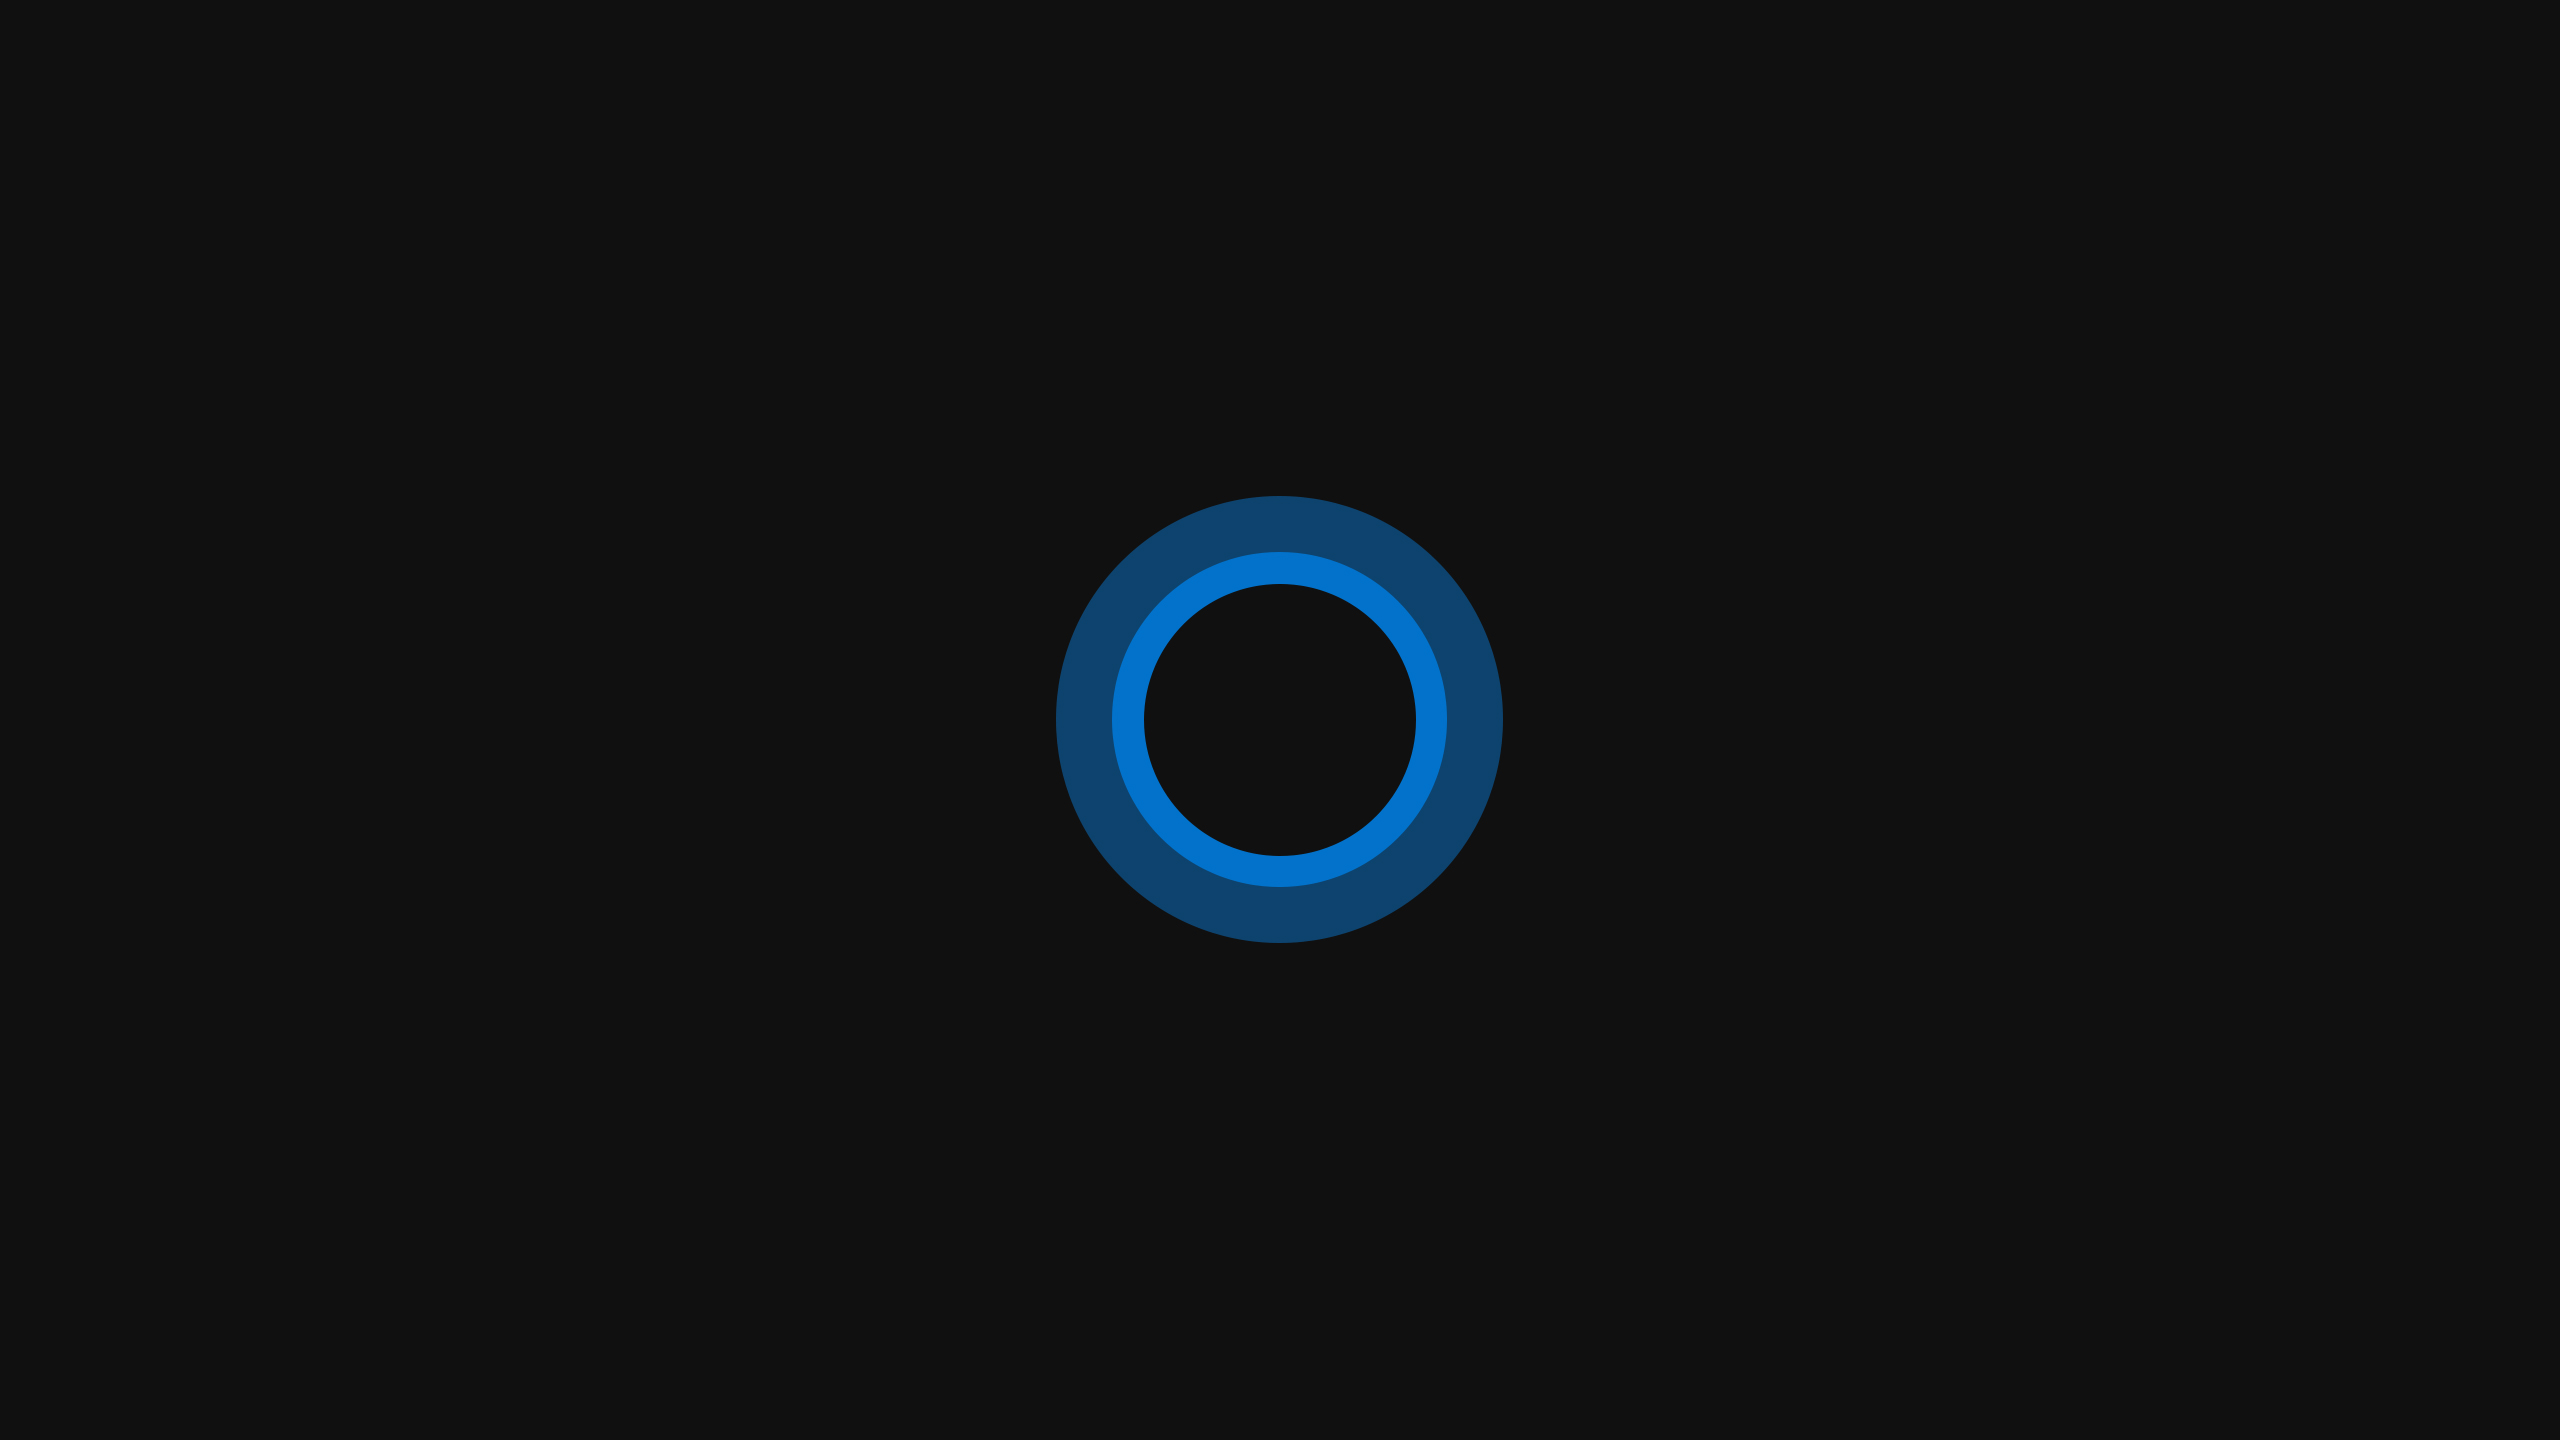 cortana live wallpaper windows 10 wallpapersafari